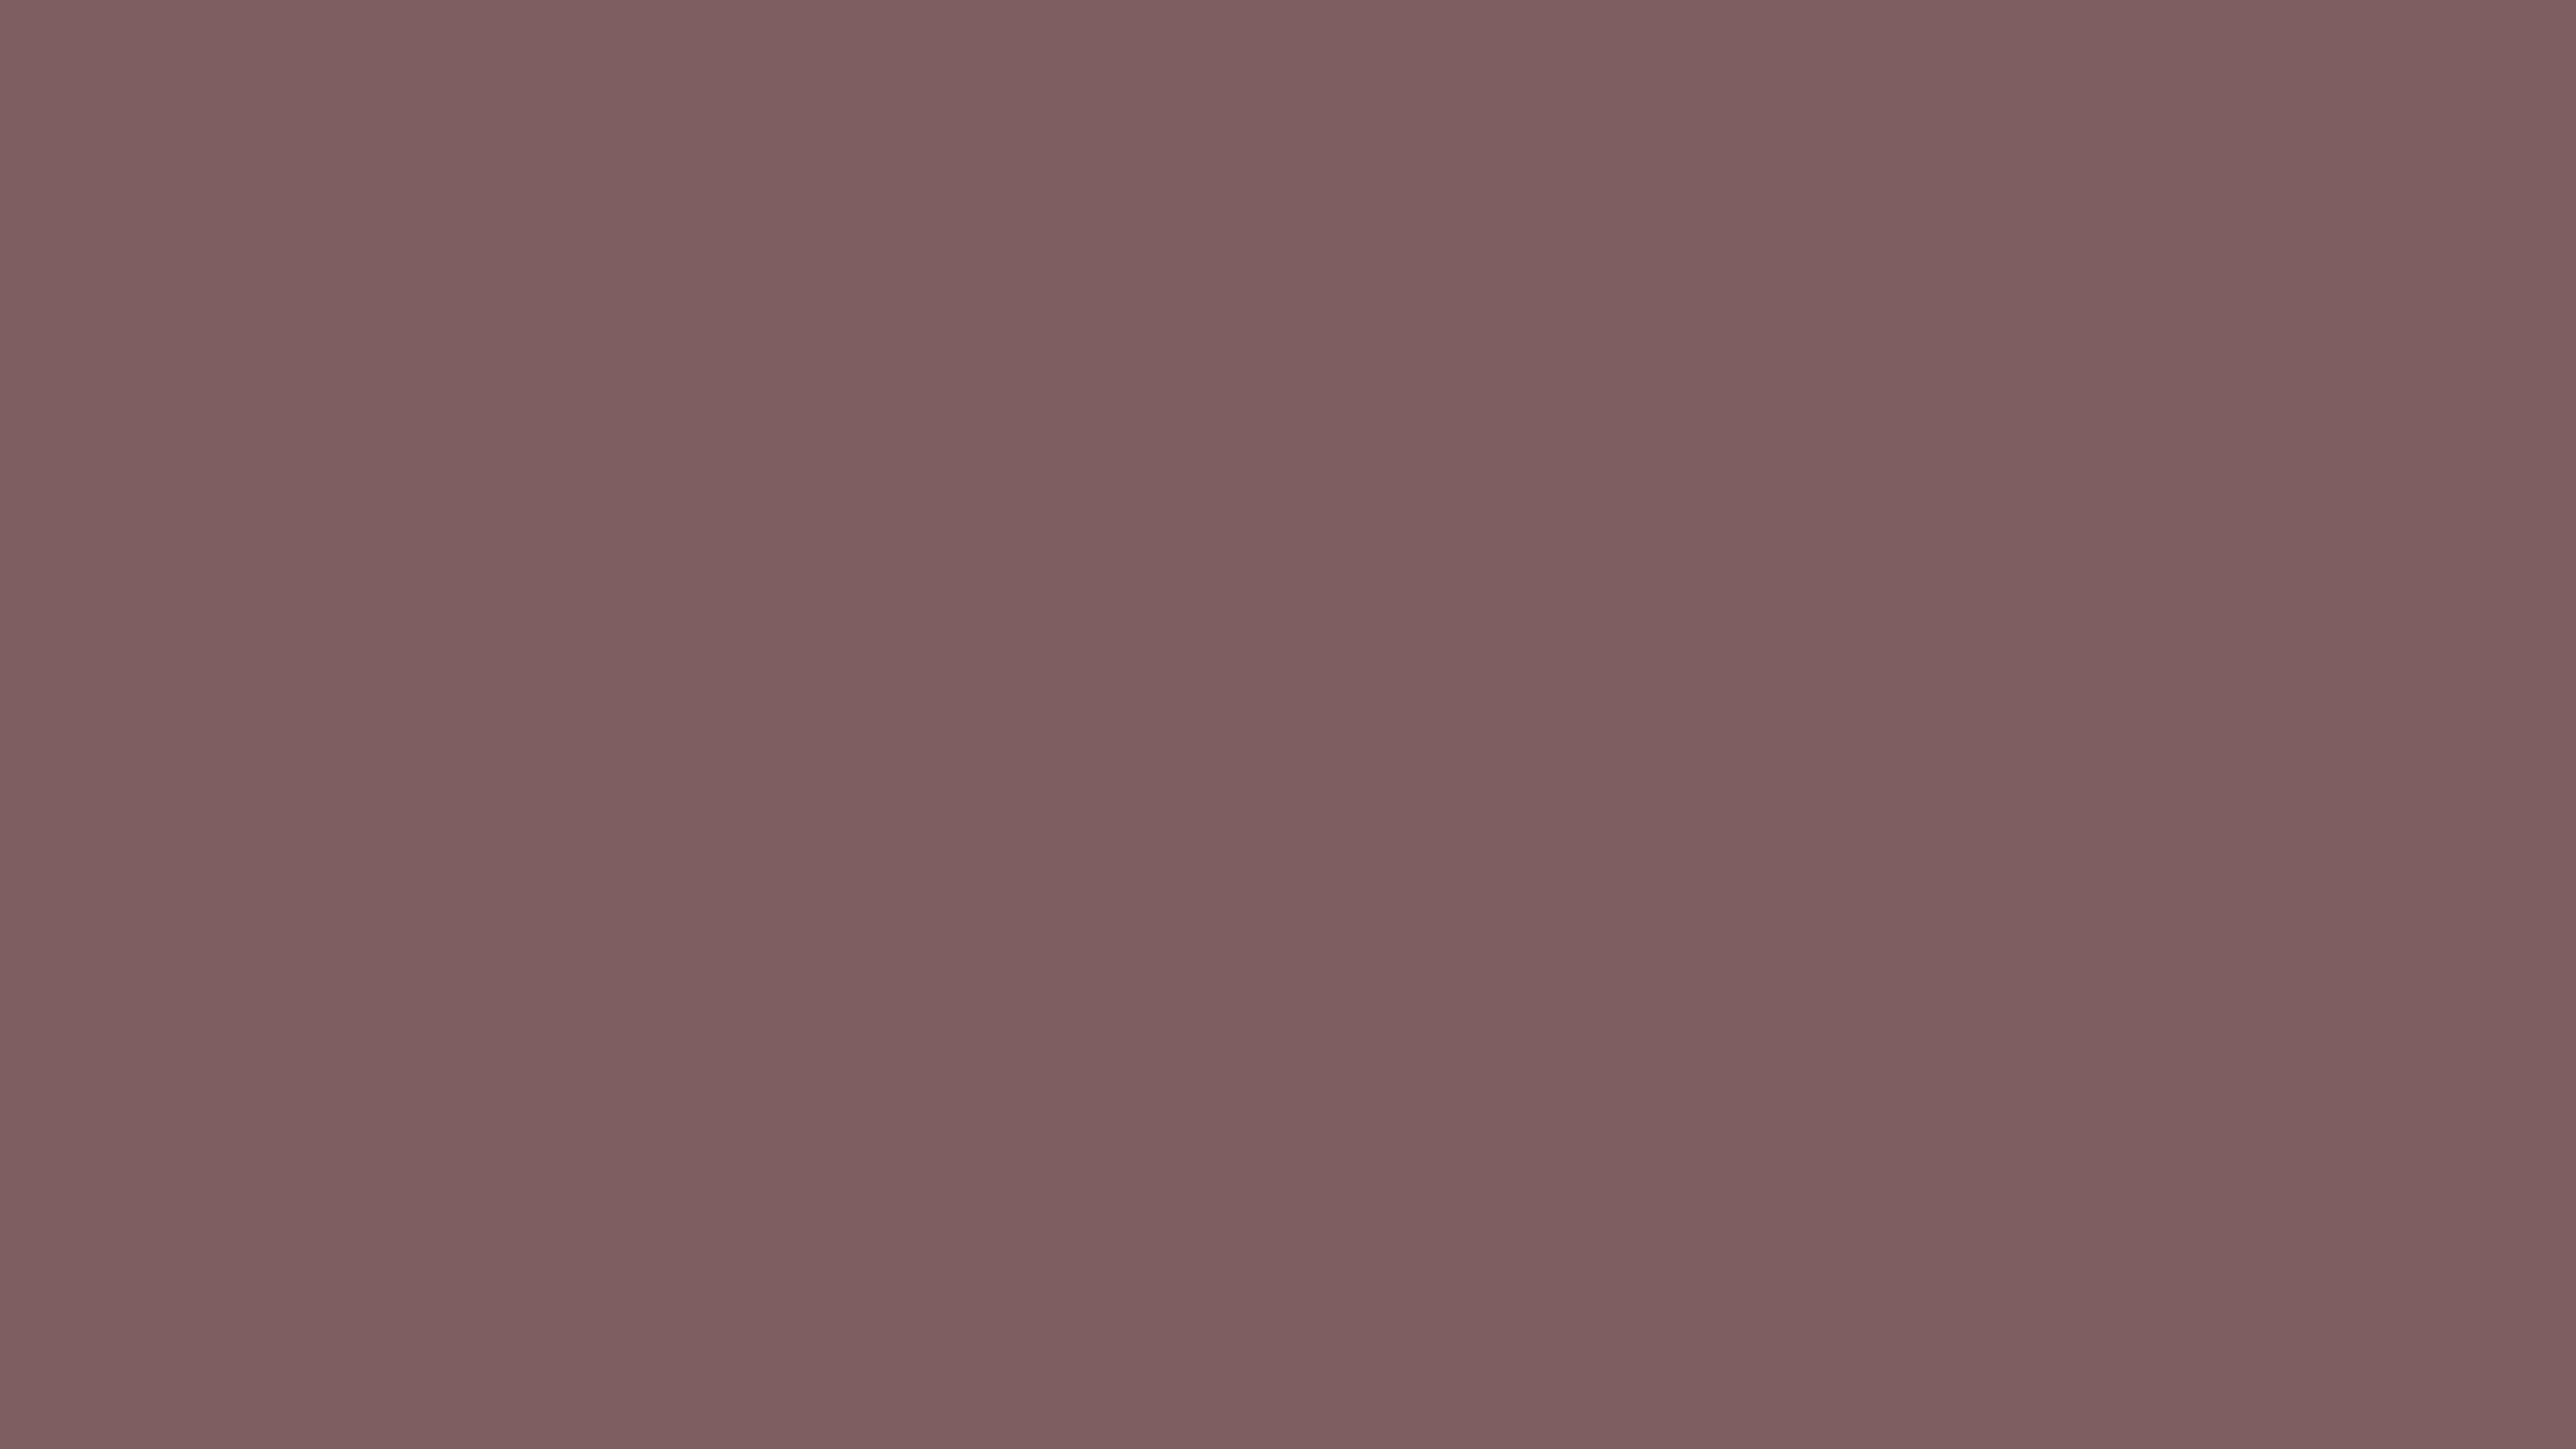 7680x4320 Deep Taupe Solid Color Background